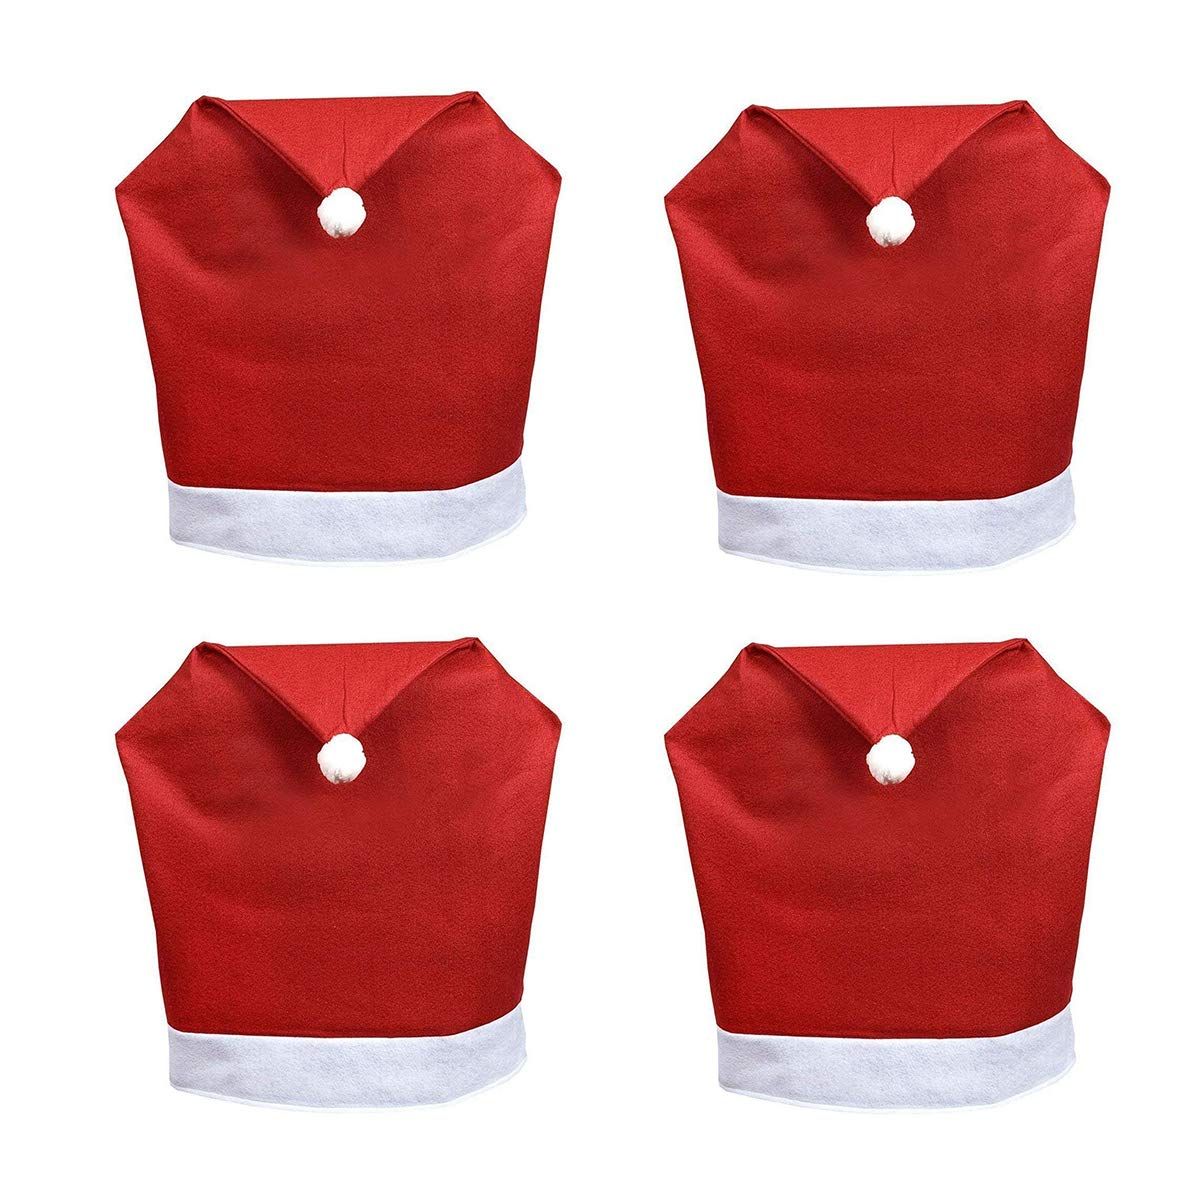 DH 4 Pcs Christmas Red Santa Hat Chair Back Covers for Xmas Party Christmas Kitchen Dining Room Dinner Table Decoration